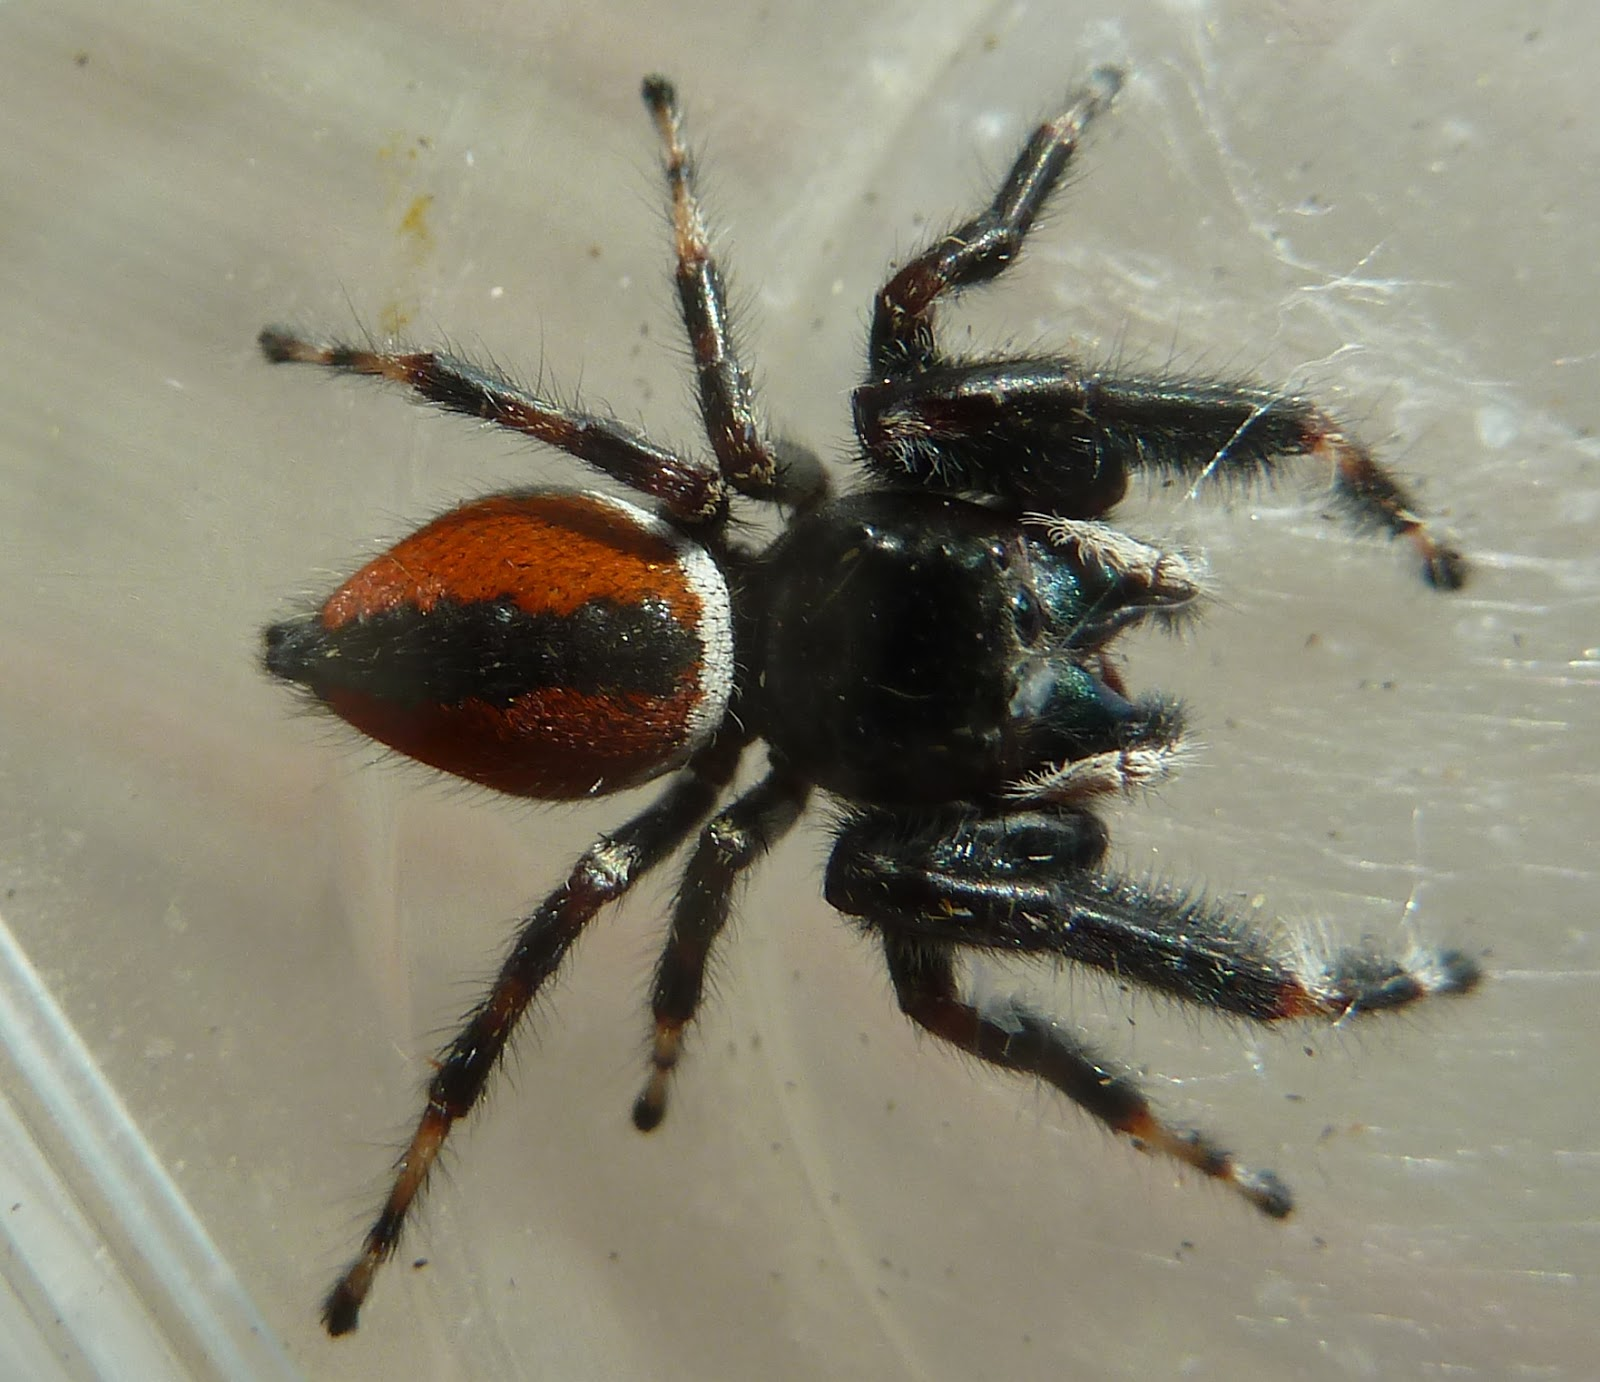 Black jumping spider with red dot - photo#38